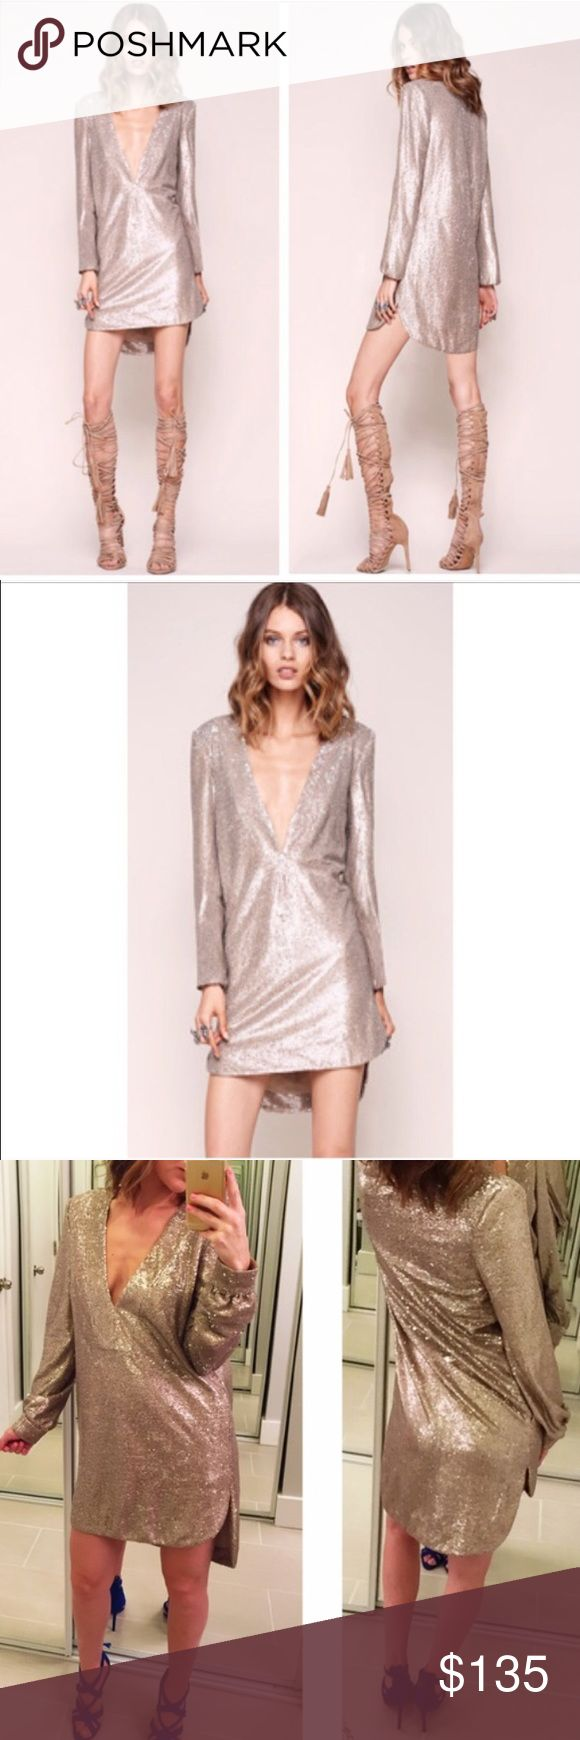 The JetSet Diaries Sequins Oasis Dress - S As STUNNING as it looks. EUC - only worn once but it's too small for me. Will envy the new owner. Price firm please. Thanks 💕😘 **ONLY TAGGING FREE PEOPLE FOR EXPOSURE** Free People Dresses